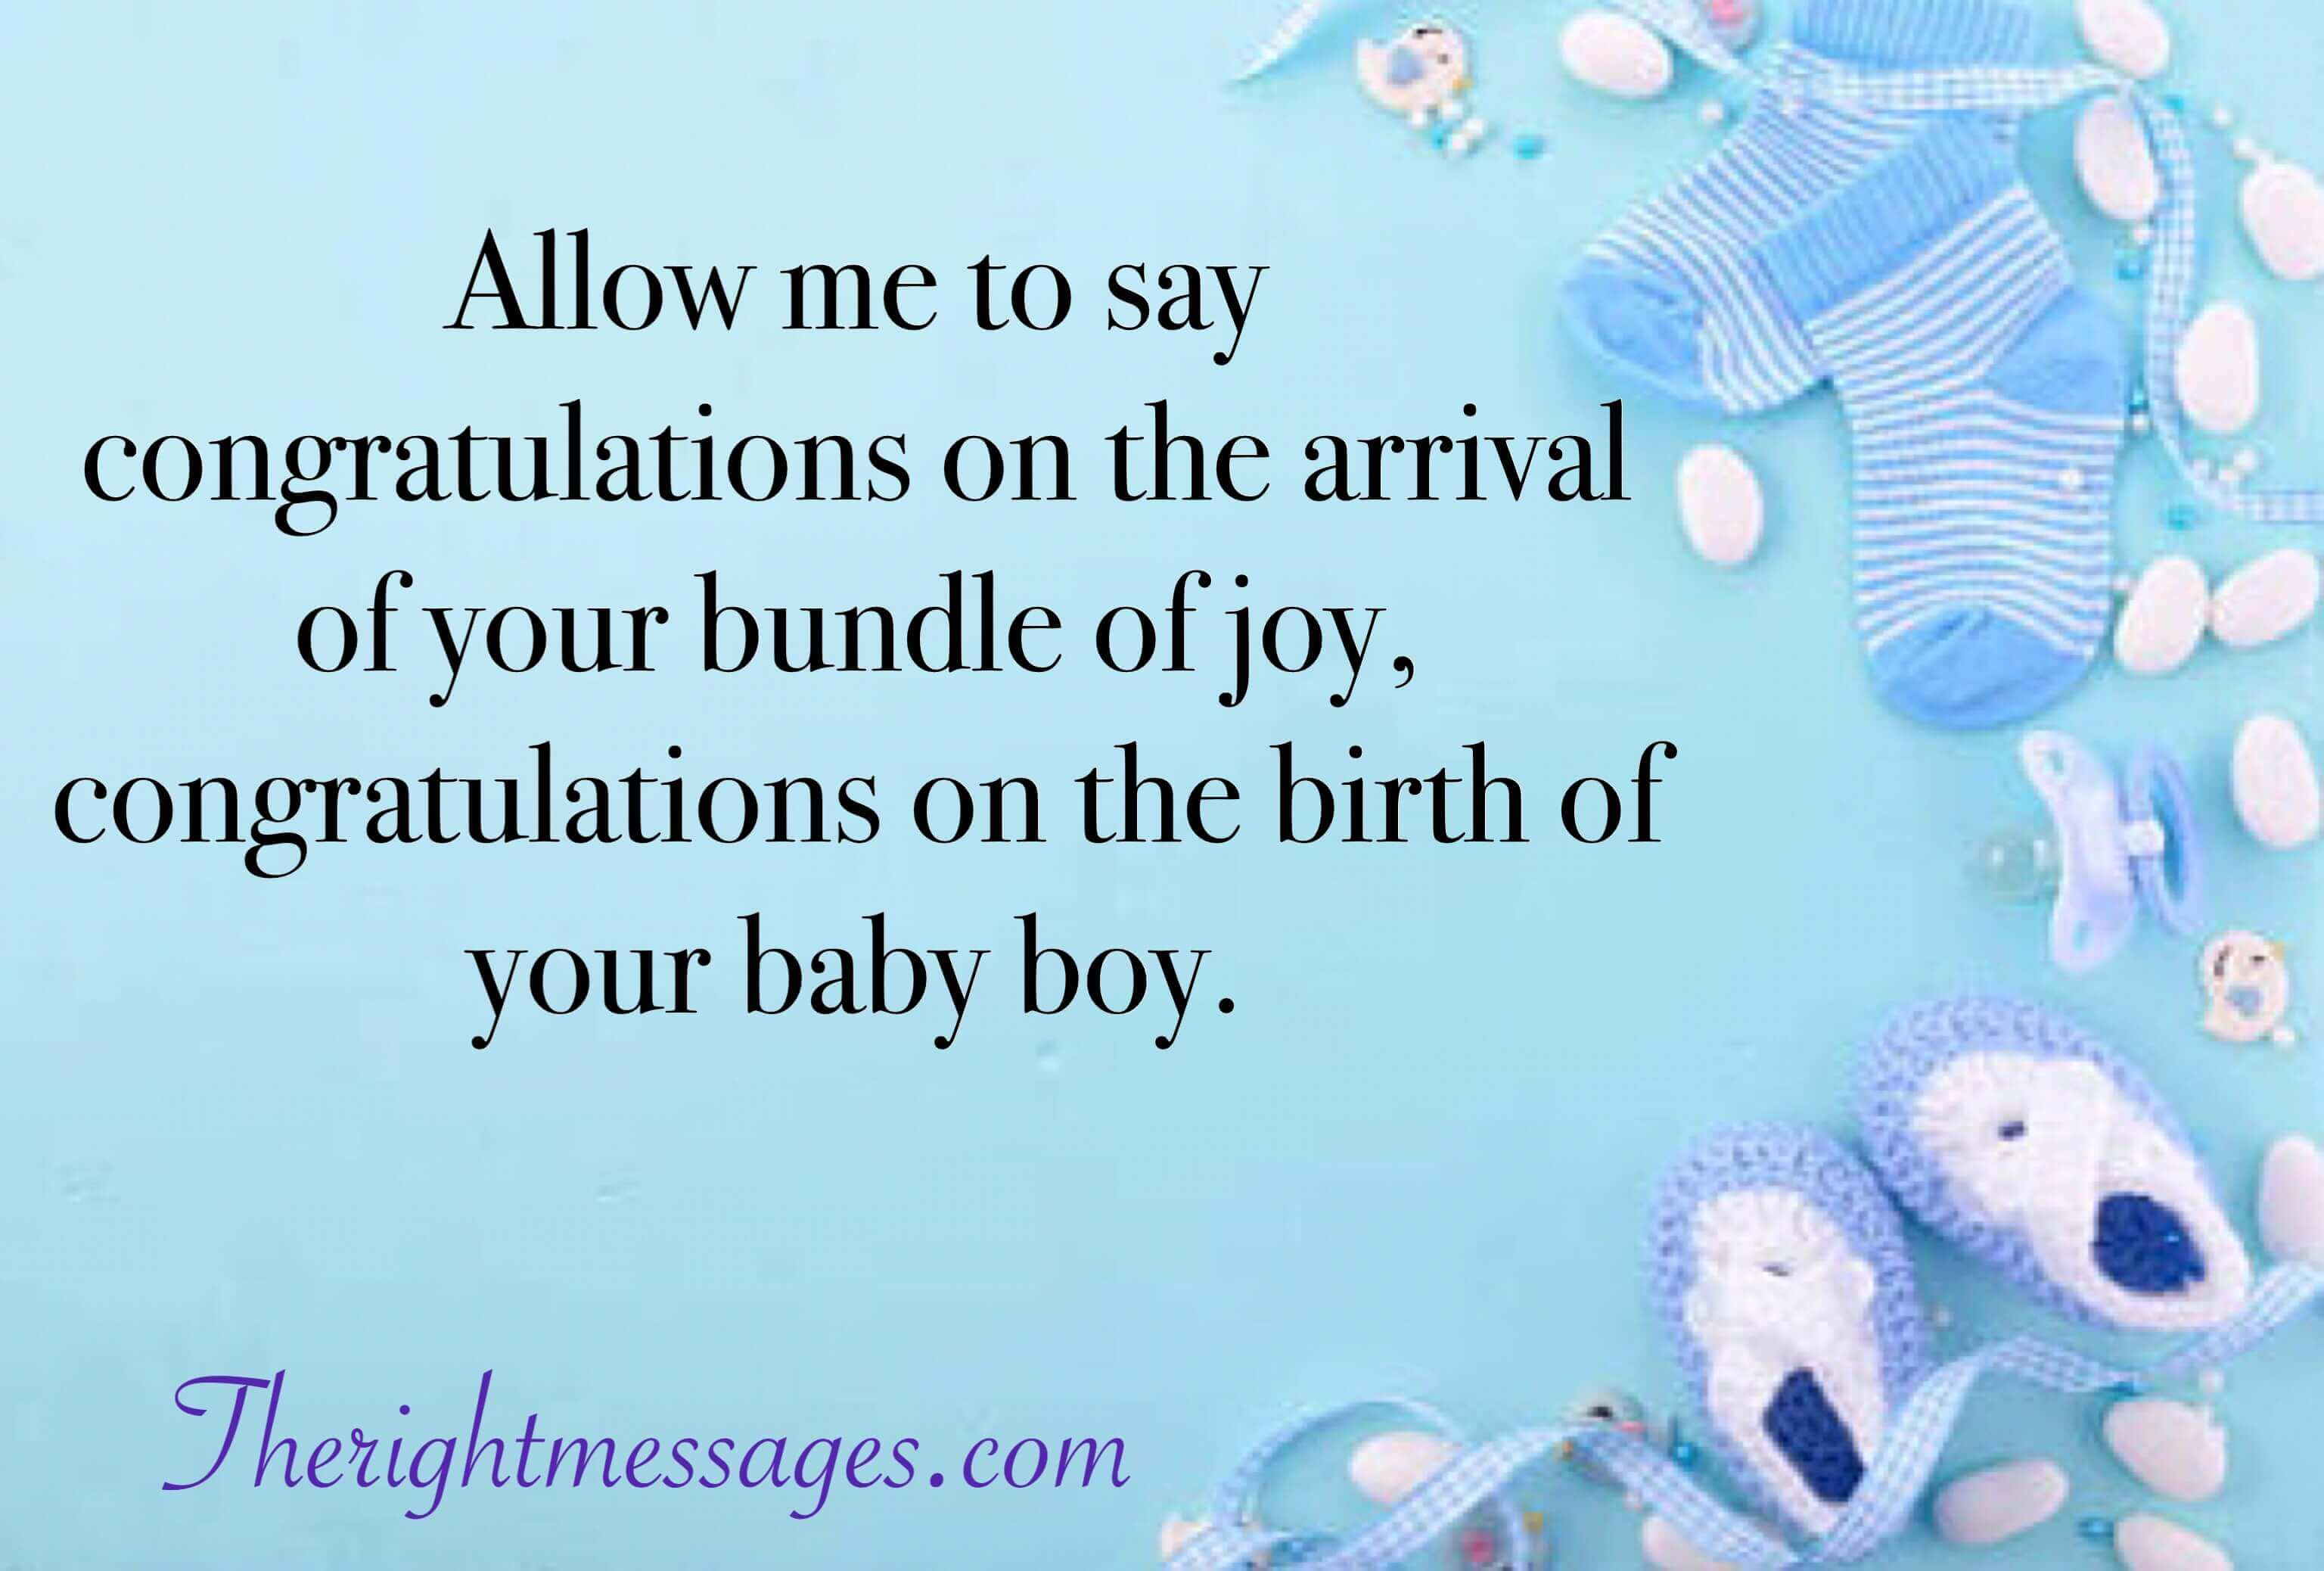 45 Congratulation Wishes & Messages for New Born Baby Boy | The